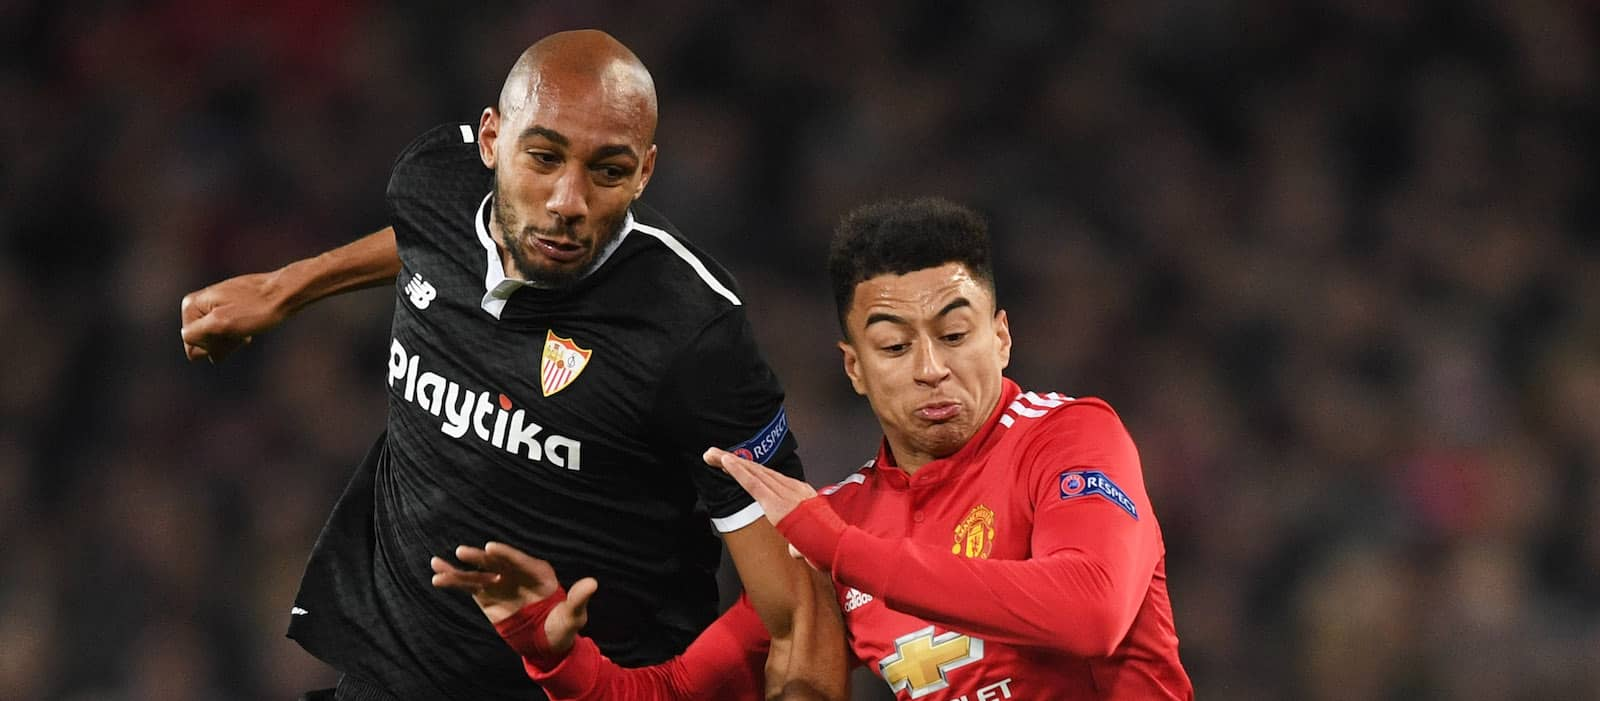 Graeme Souness: Manchester United showed no ambition against Sevilla